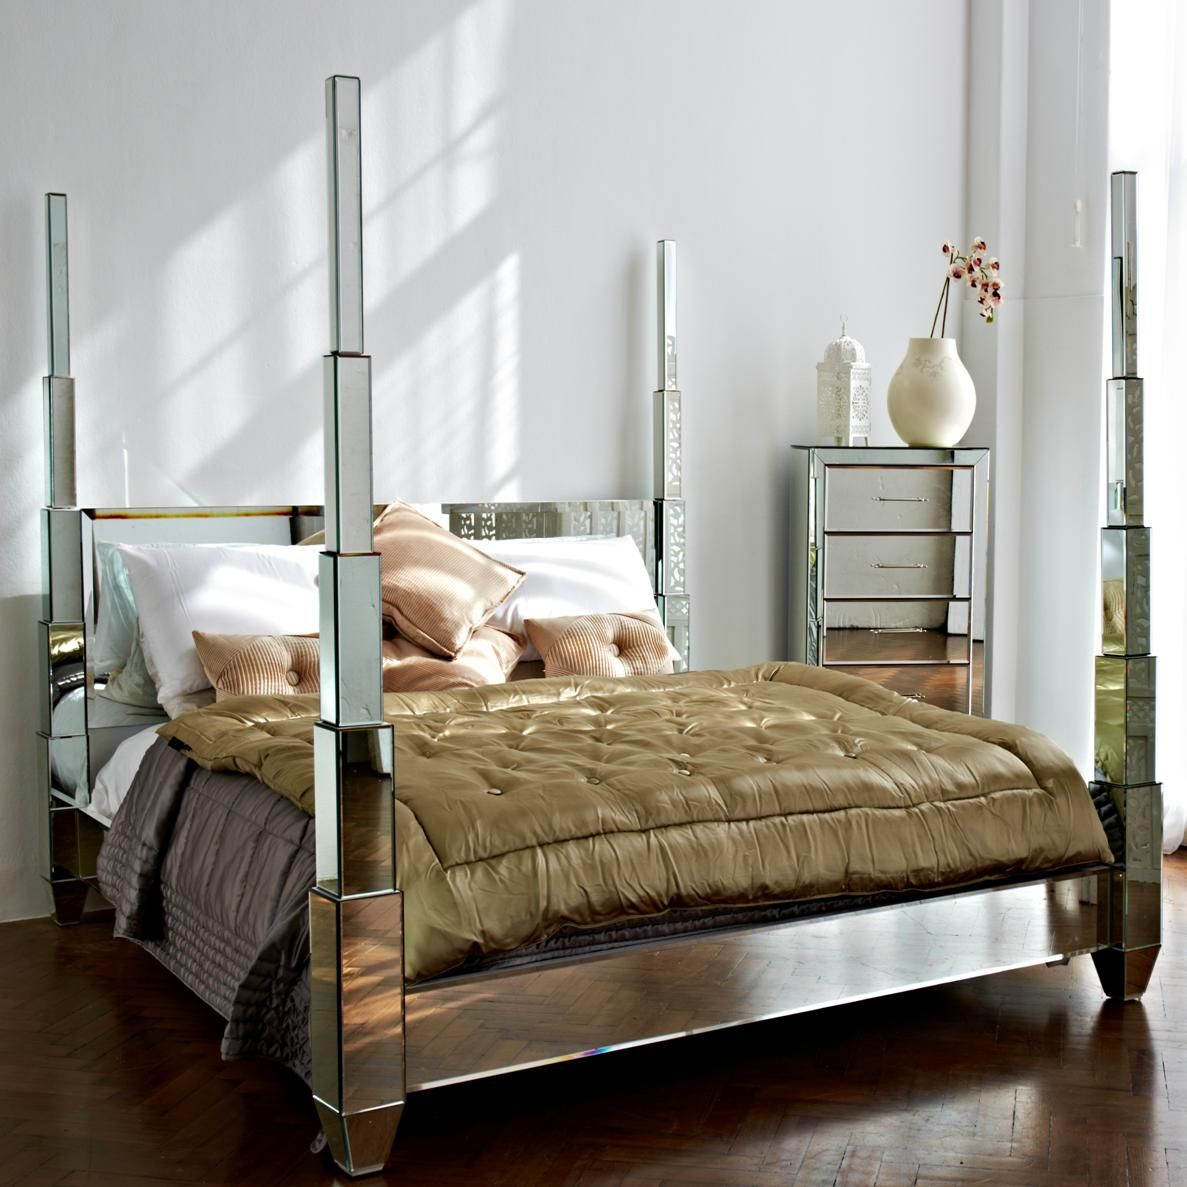 Mirrored Furniture Bedroom: Prism Mirrored Statement Bed From The Mirrored Bed Company